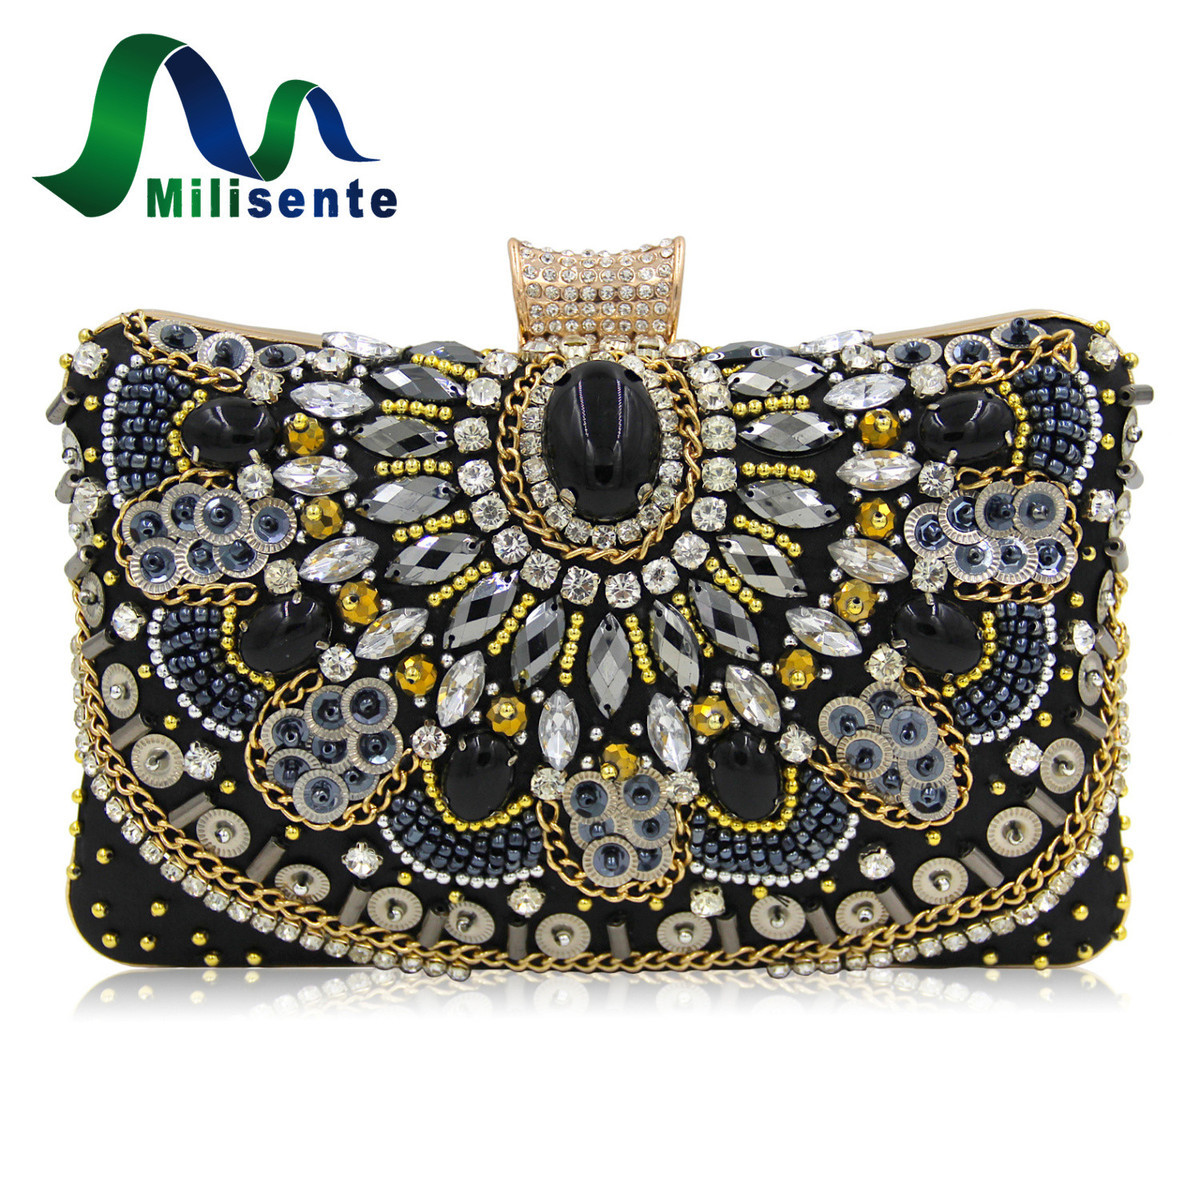 Milisente New Women Luxury Evening Bags Wedding Clutch Purse Sisters Party Bag Diamonds Silver Gold Black Good Quality tentop a new style women s peacock evening clutch bags purse print dot clutch handbag black gold silver party dinner purse 1802k